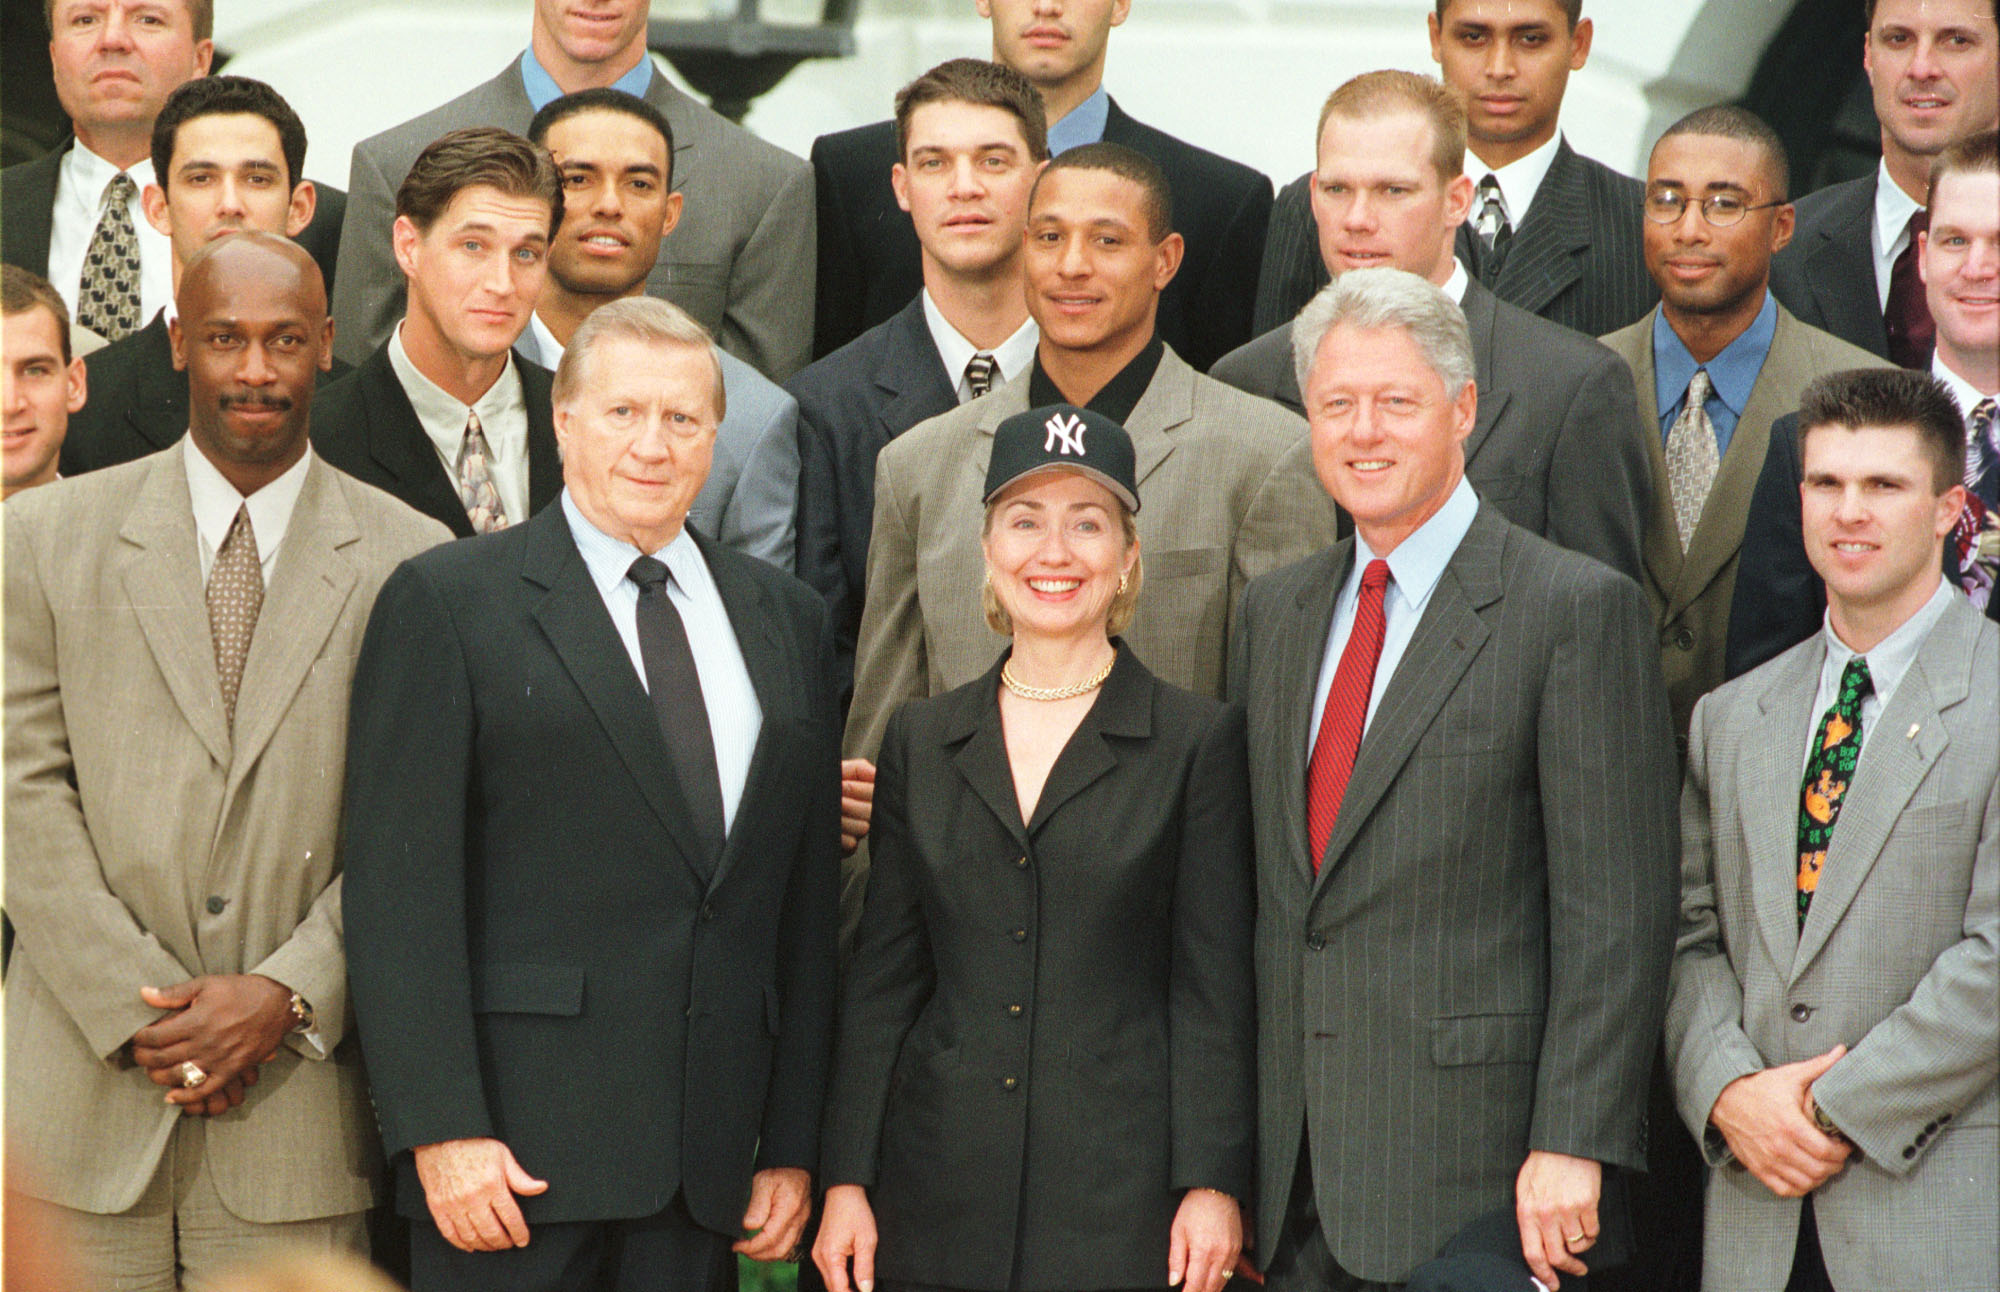 President Bill Clinton, first lady Hillary Rodham Clinton and Yankees owner George M. Steinbrenner III (L) pose with members of the team as the 1998 World Series winning Yankees were invited to the White House June 10, 1999 in Washington, DC. (photo by Richard Ellis)